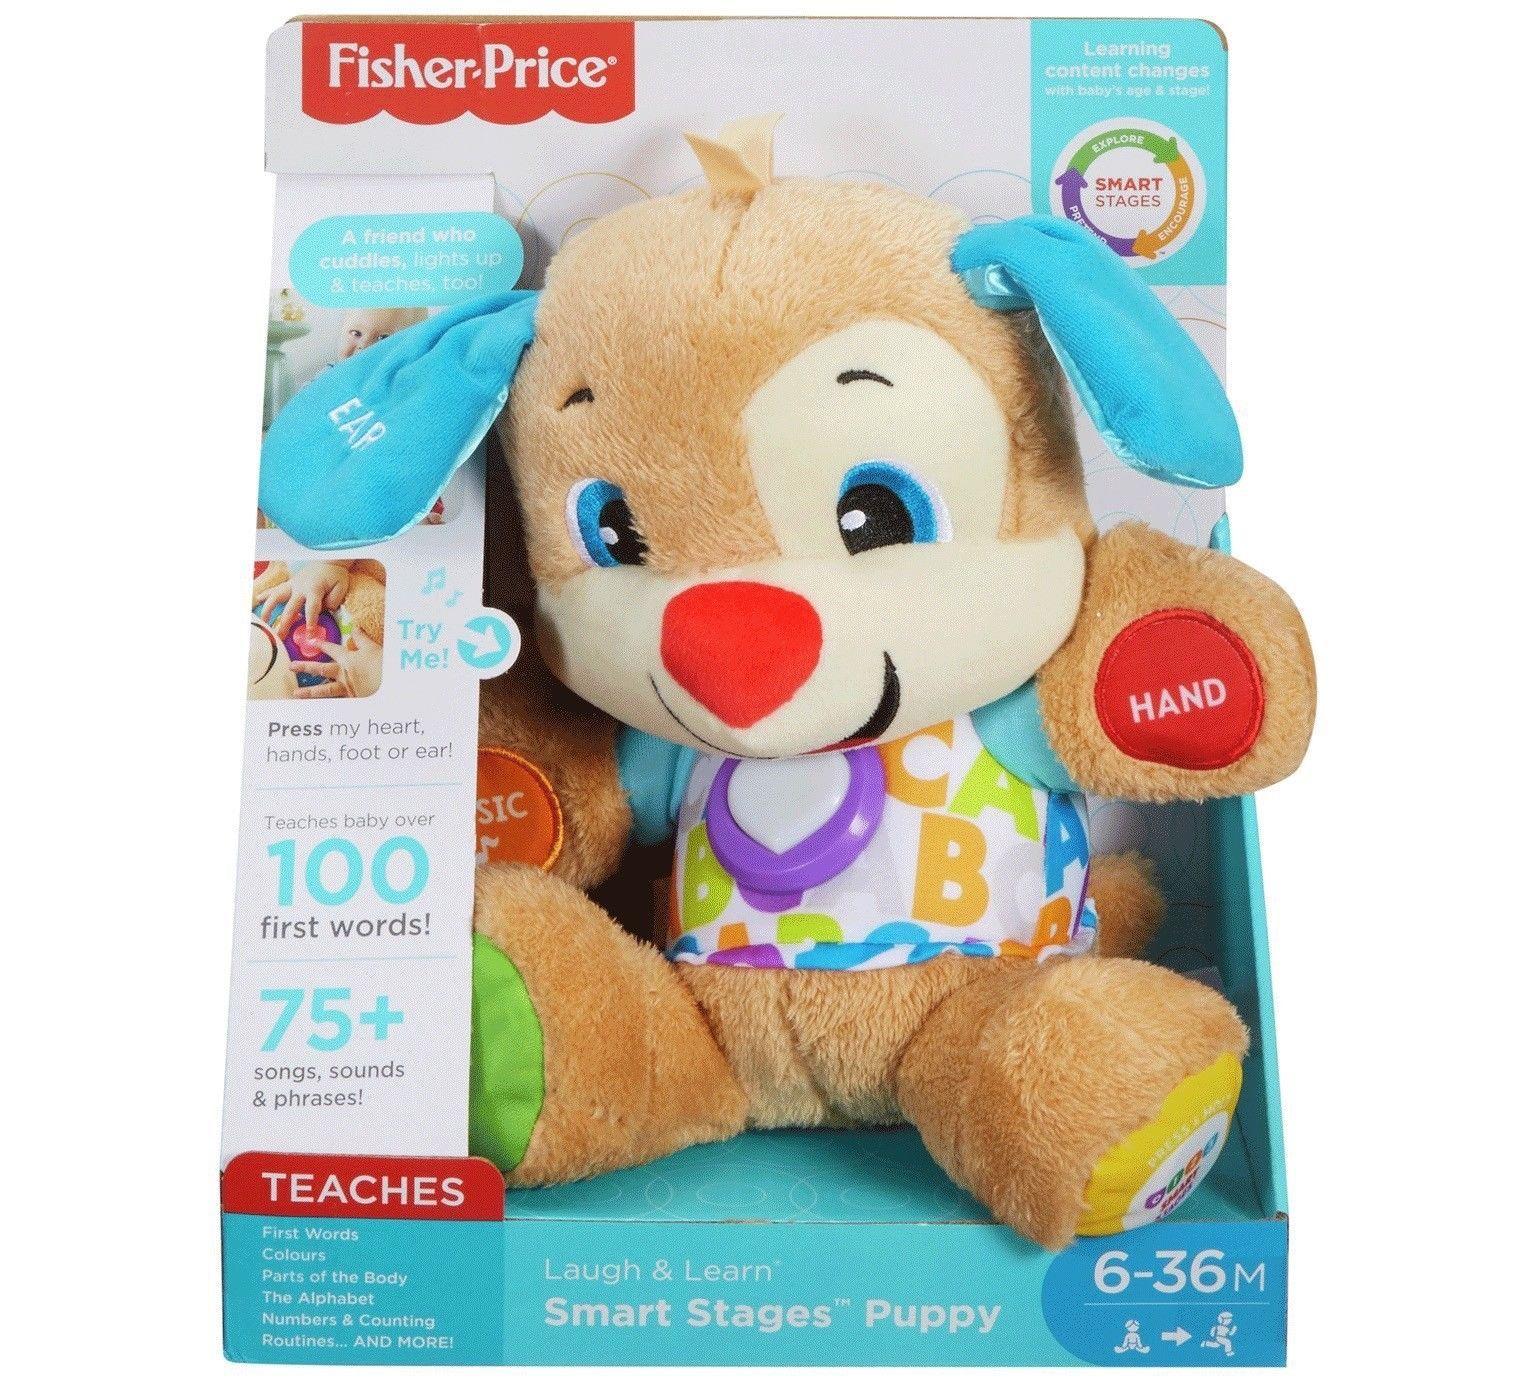 Fisher Price Laugh Learn Smart Stages Puppy 75 Songs Sounds Phrases Phone